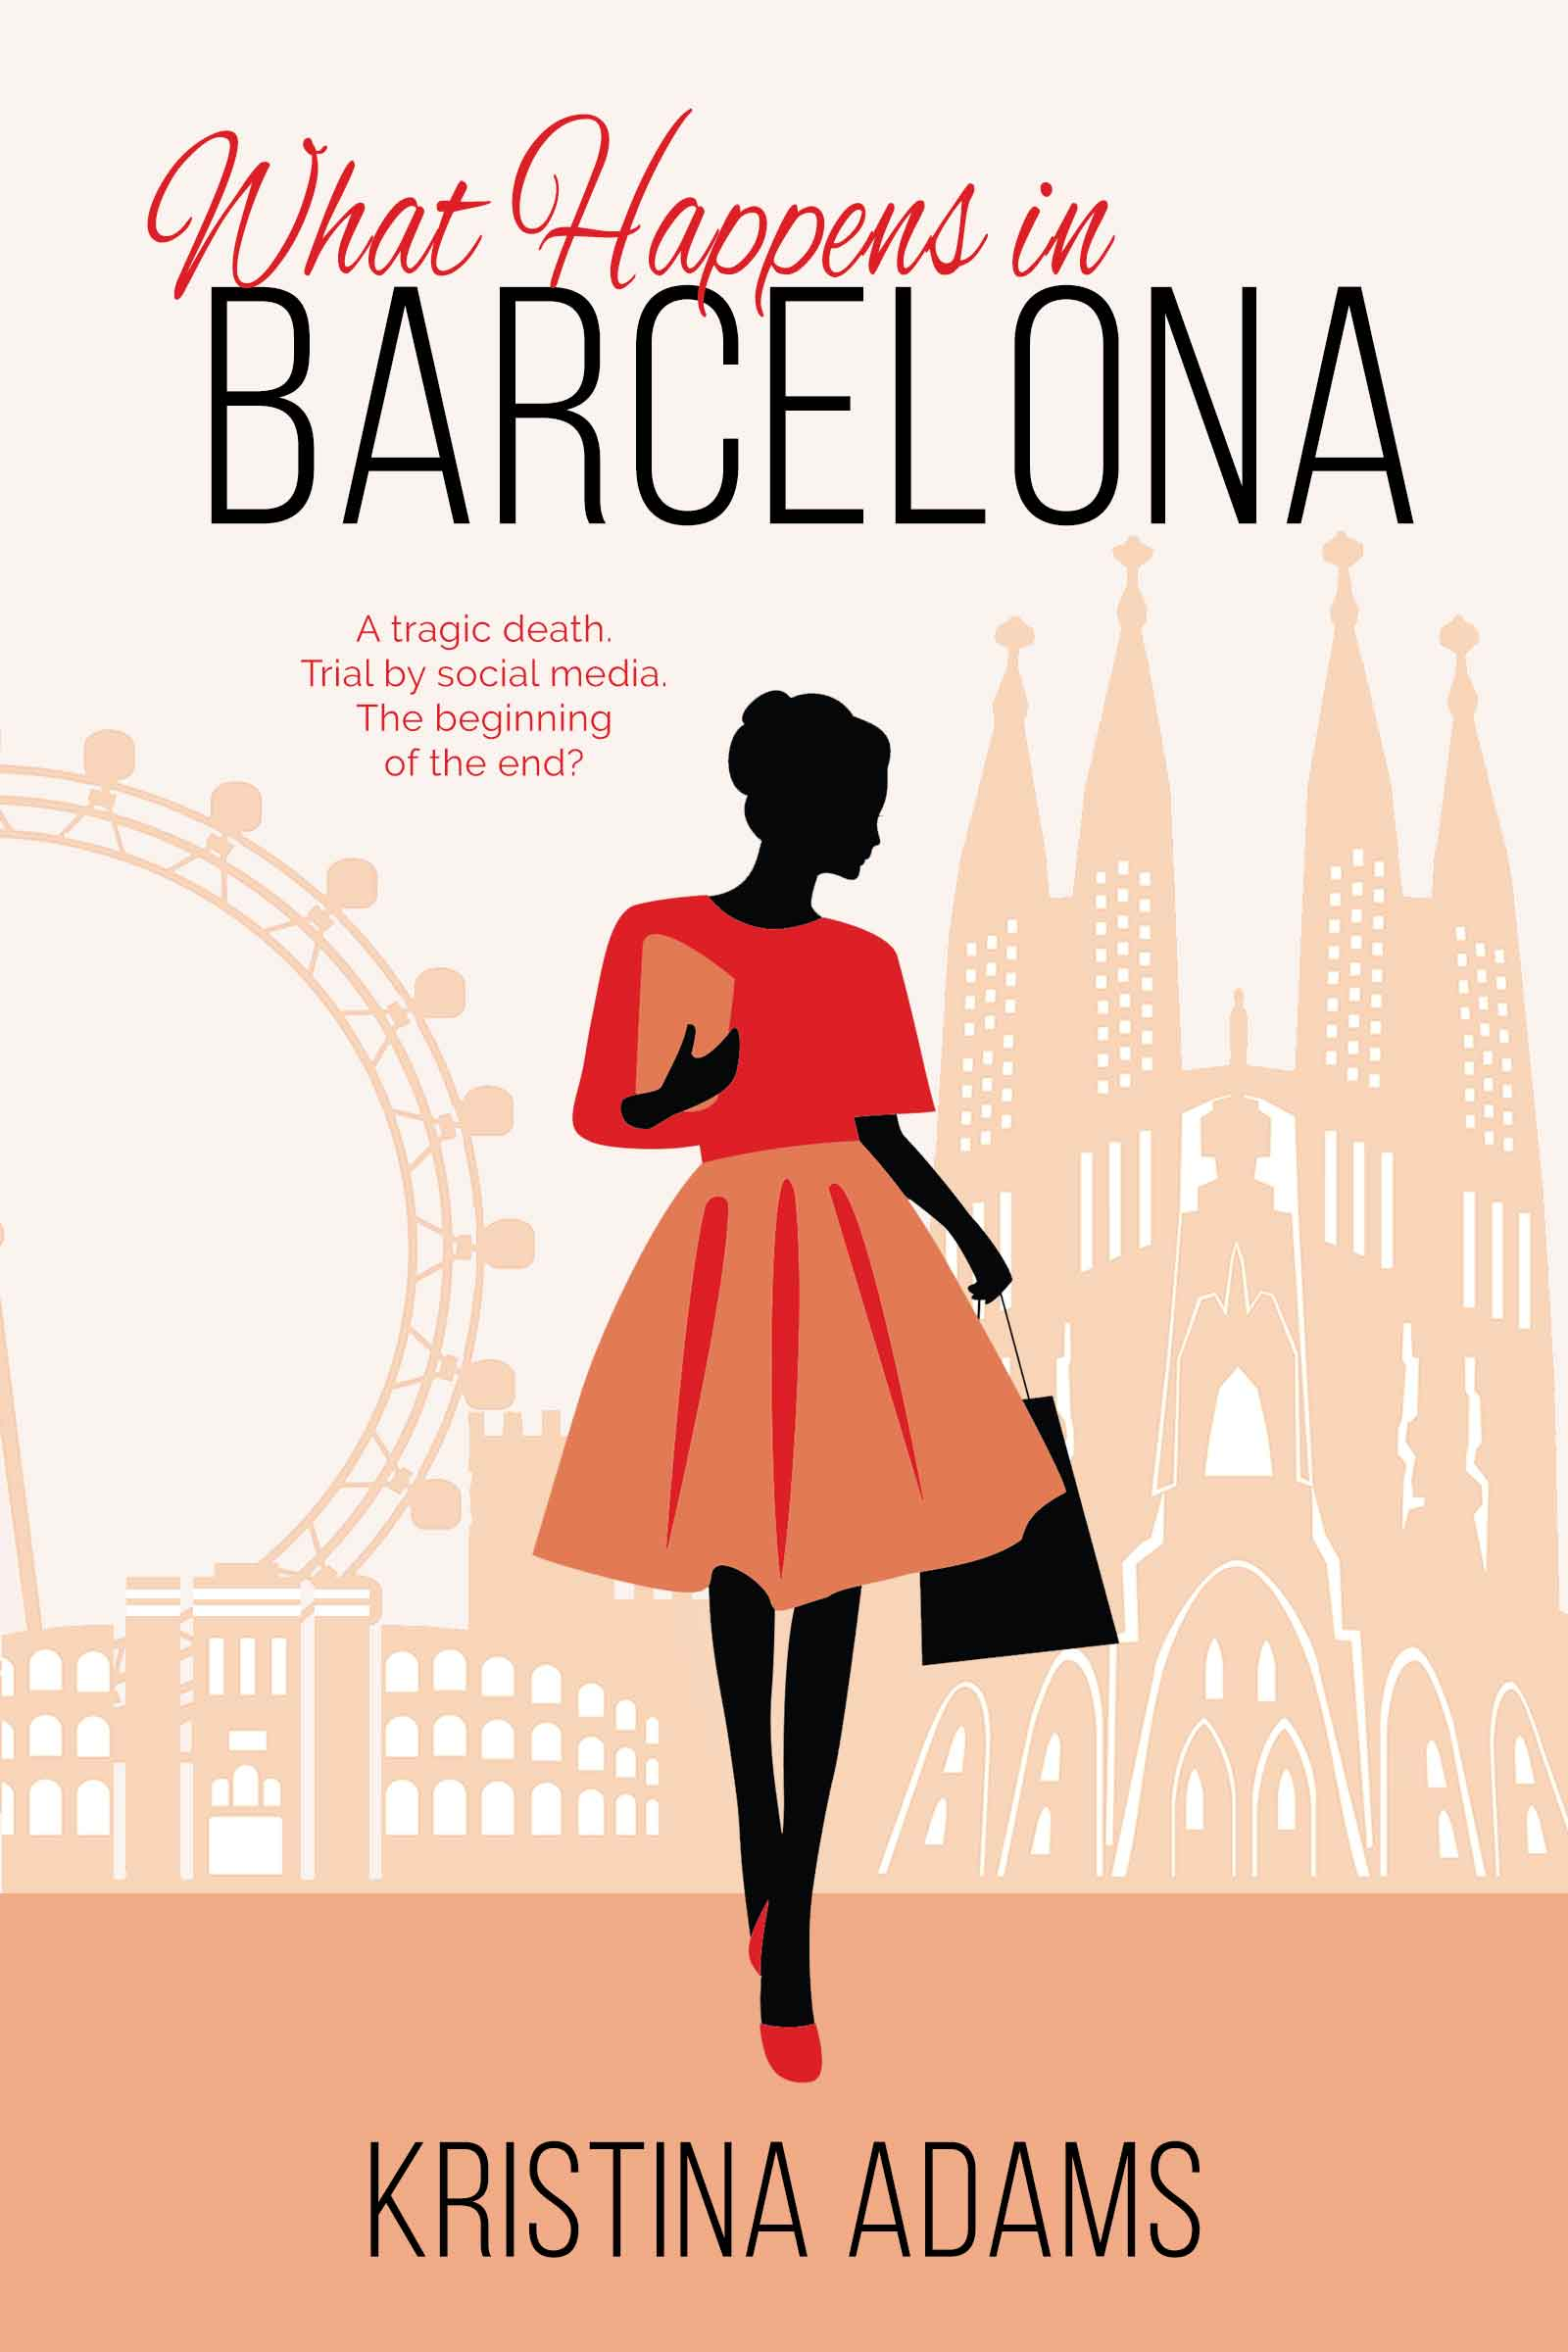 What Happens in Barcelona, the fourth book in the What Happens in... series by Kristina Adams